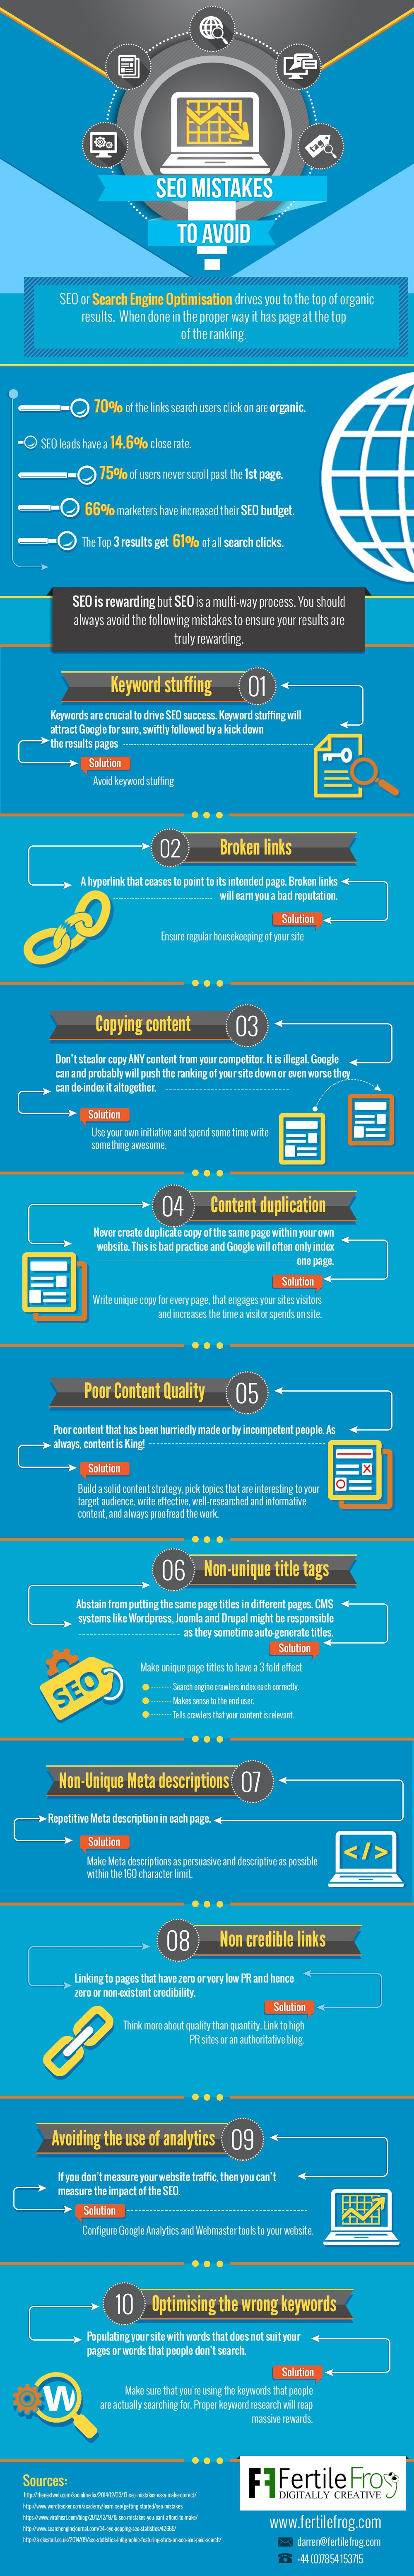 SEO mistakes infographic